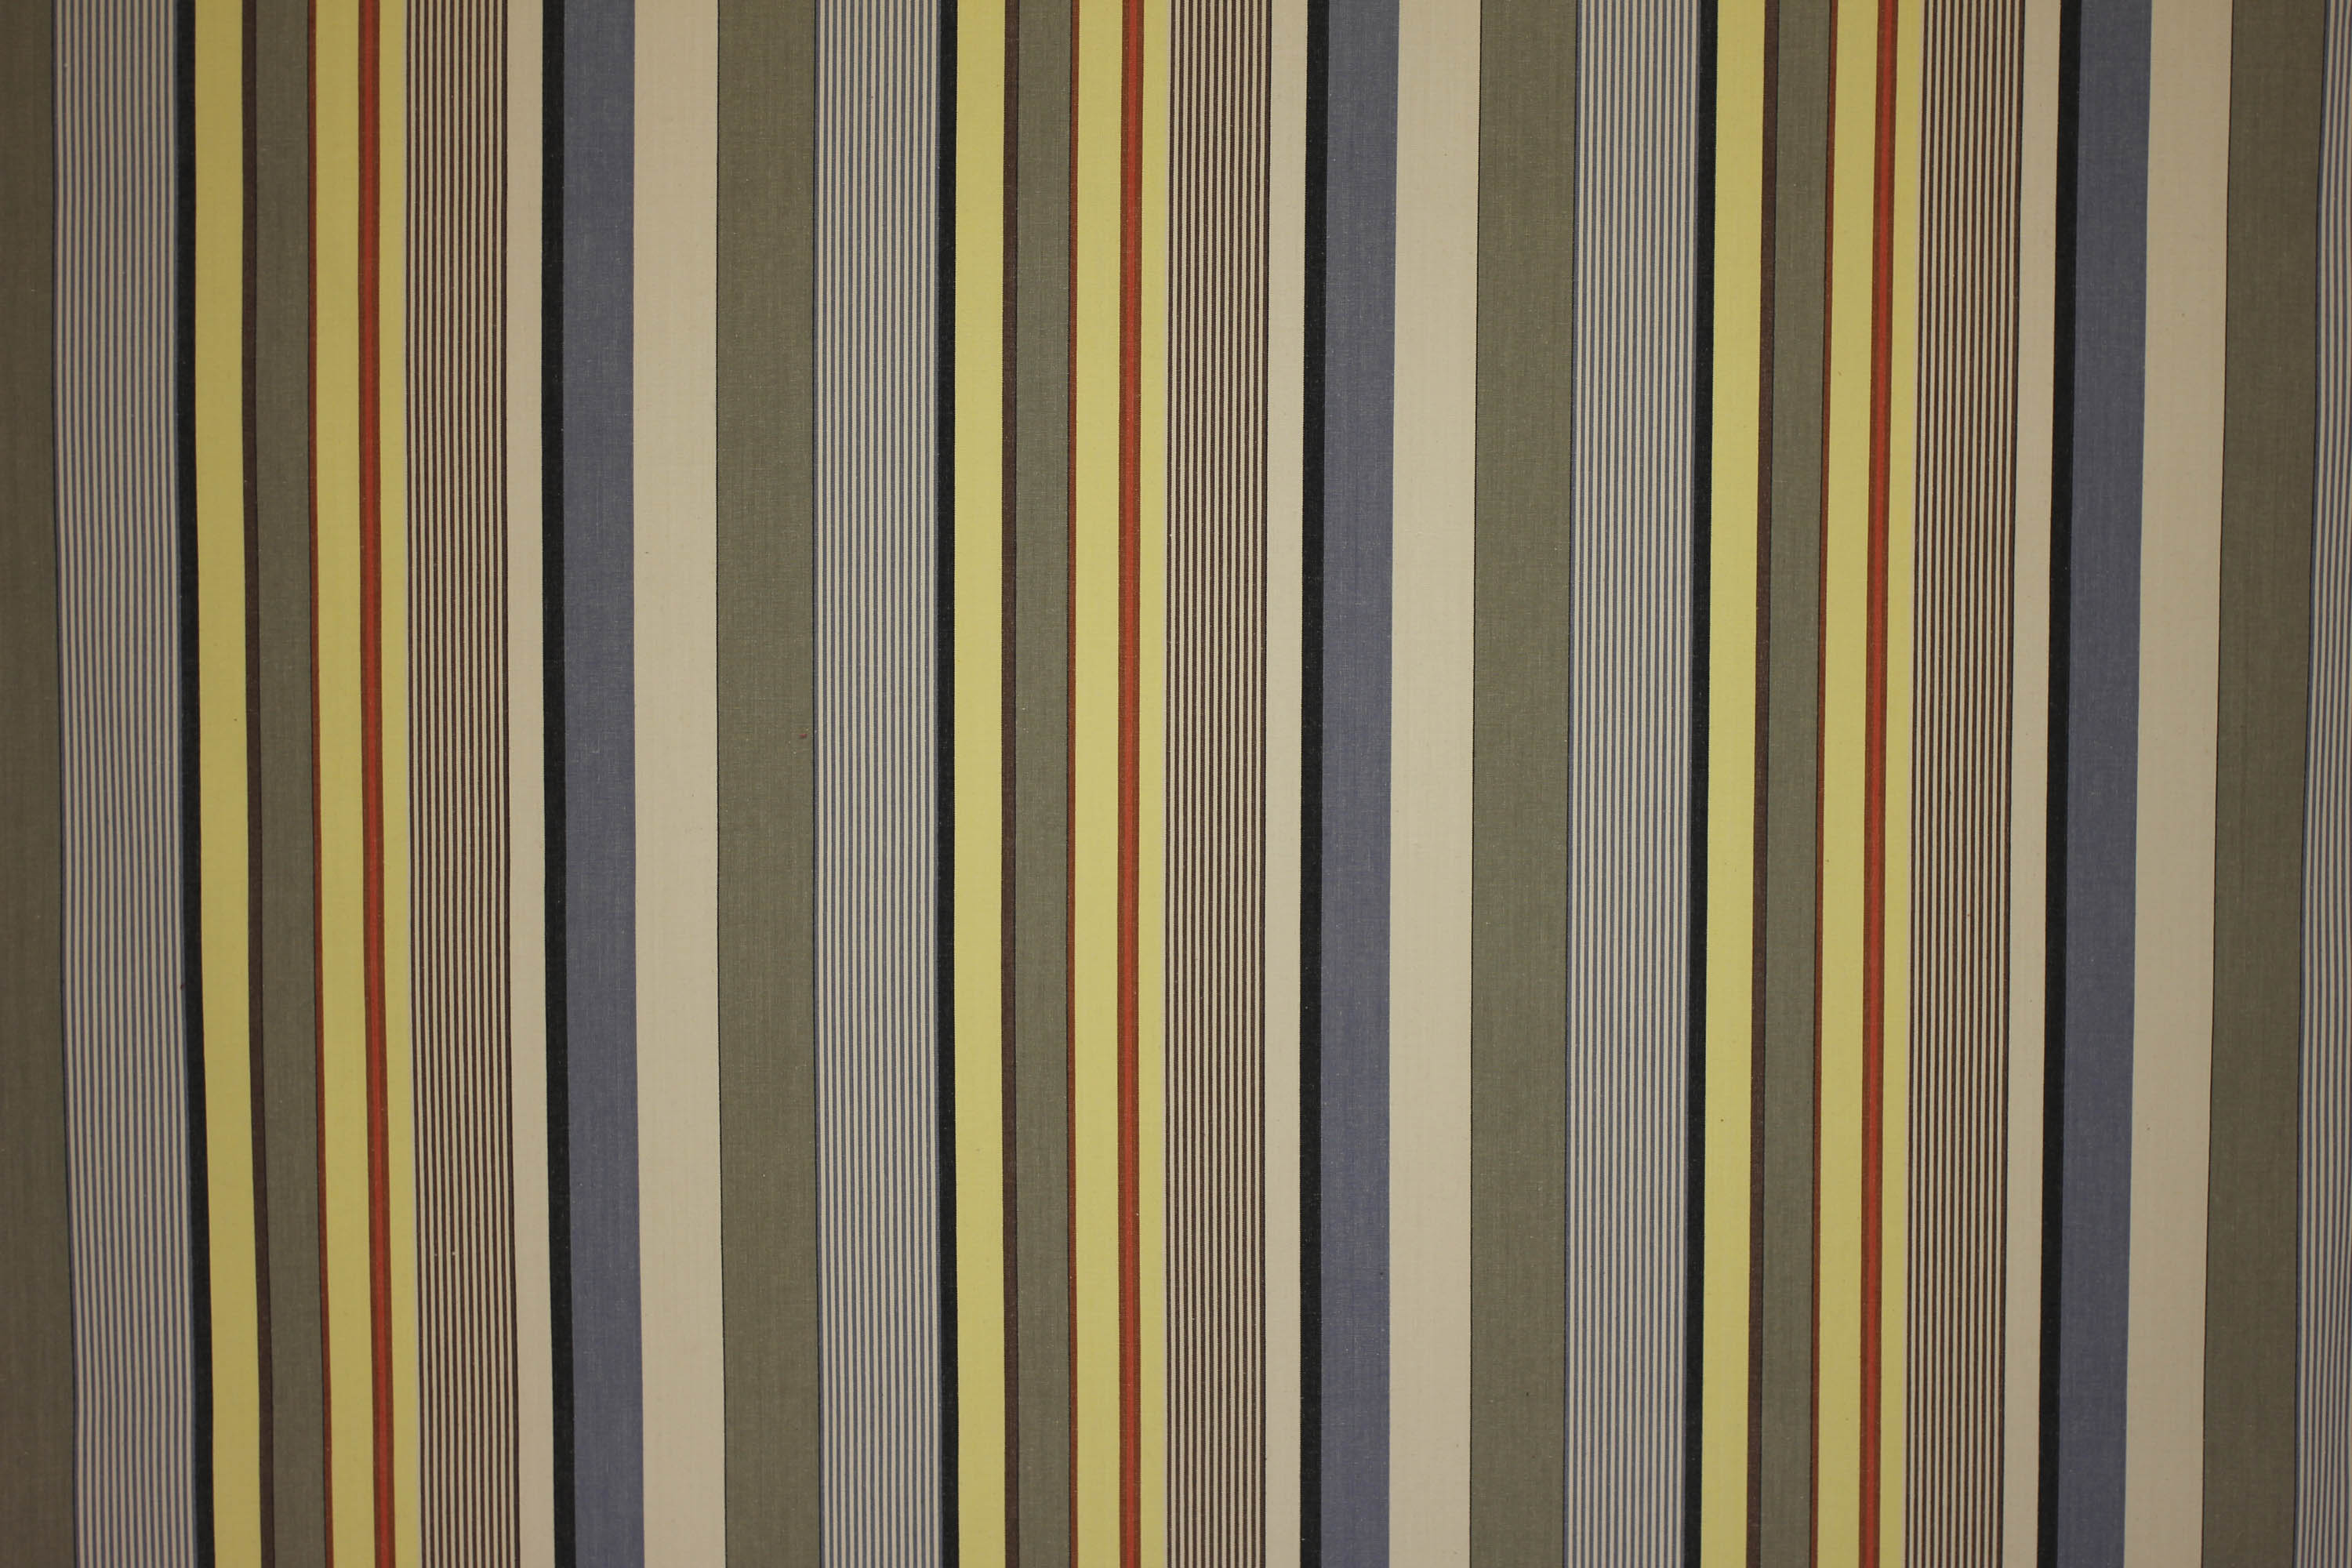 Pilota Beige Striped Fabric | The Stripes Company UK